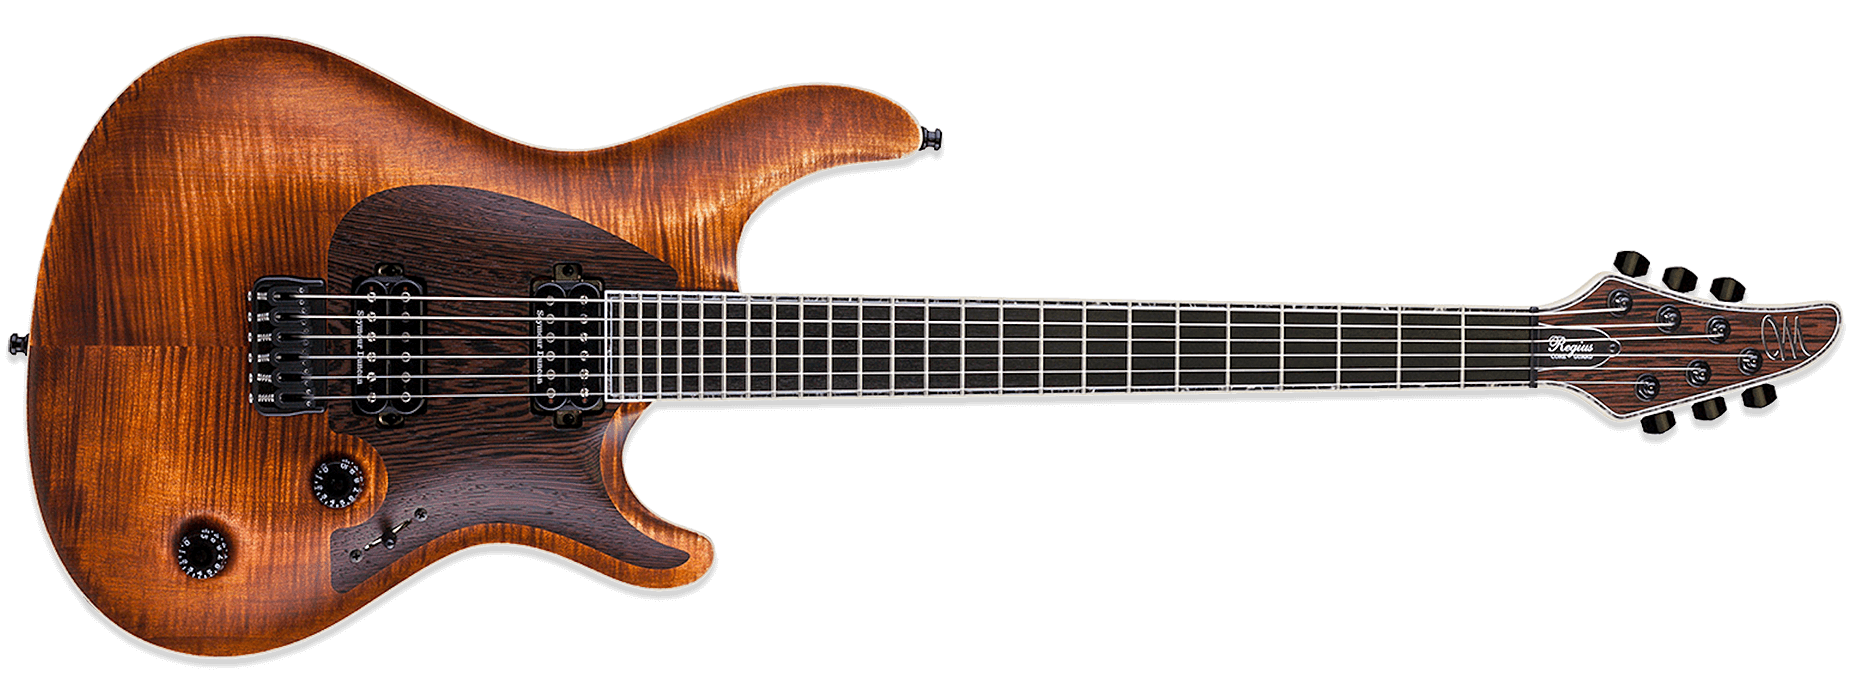 Mayones Regius CoreGuard 6 Antique Brown